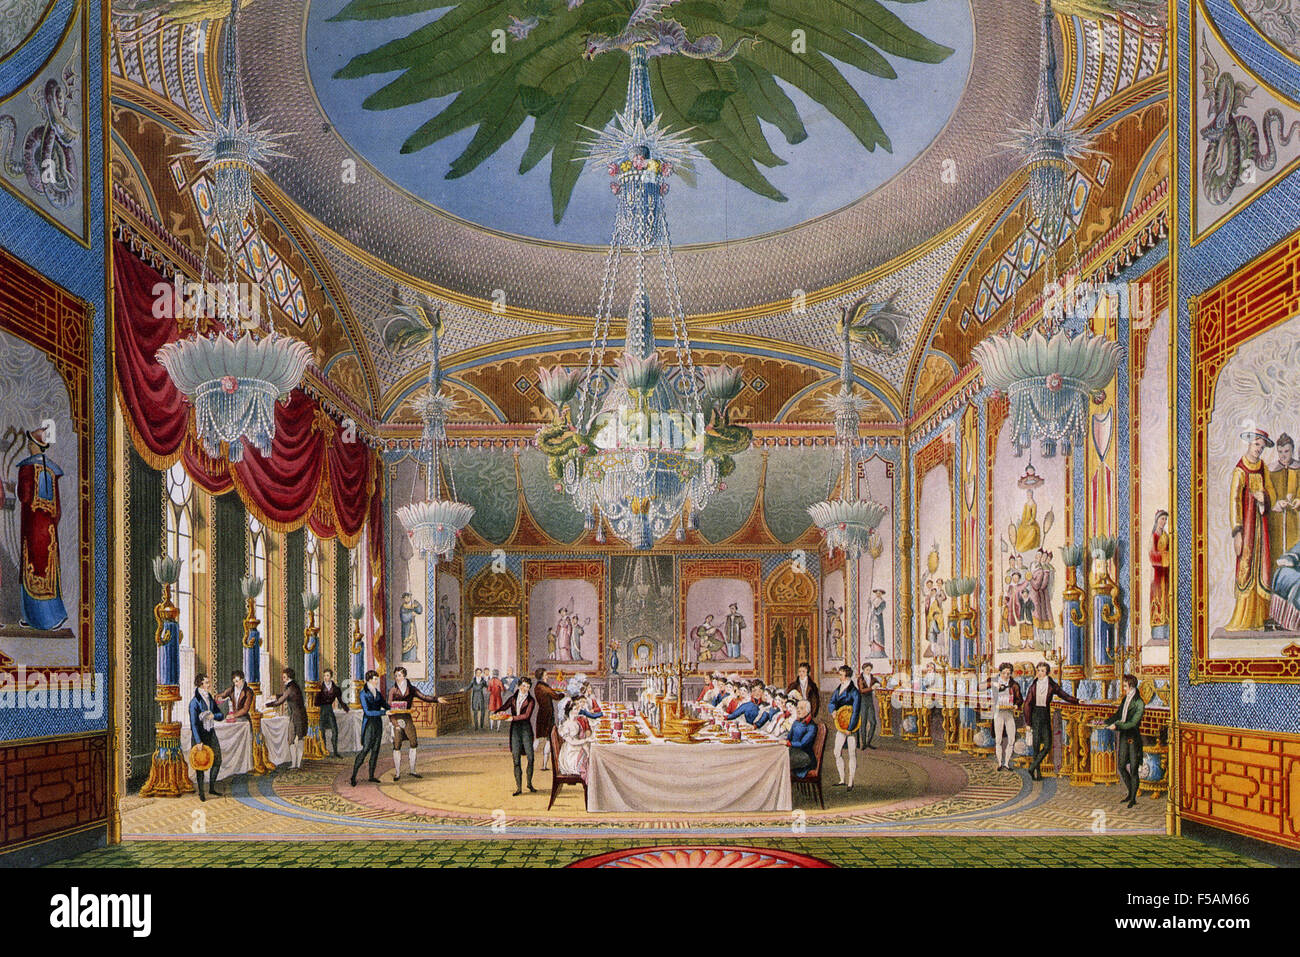 BRIGHTON PAVILION - the Banqueting Room from 'The Royal Pavilion at Brighton' published by the architect - Stock Image